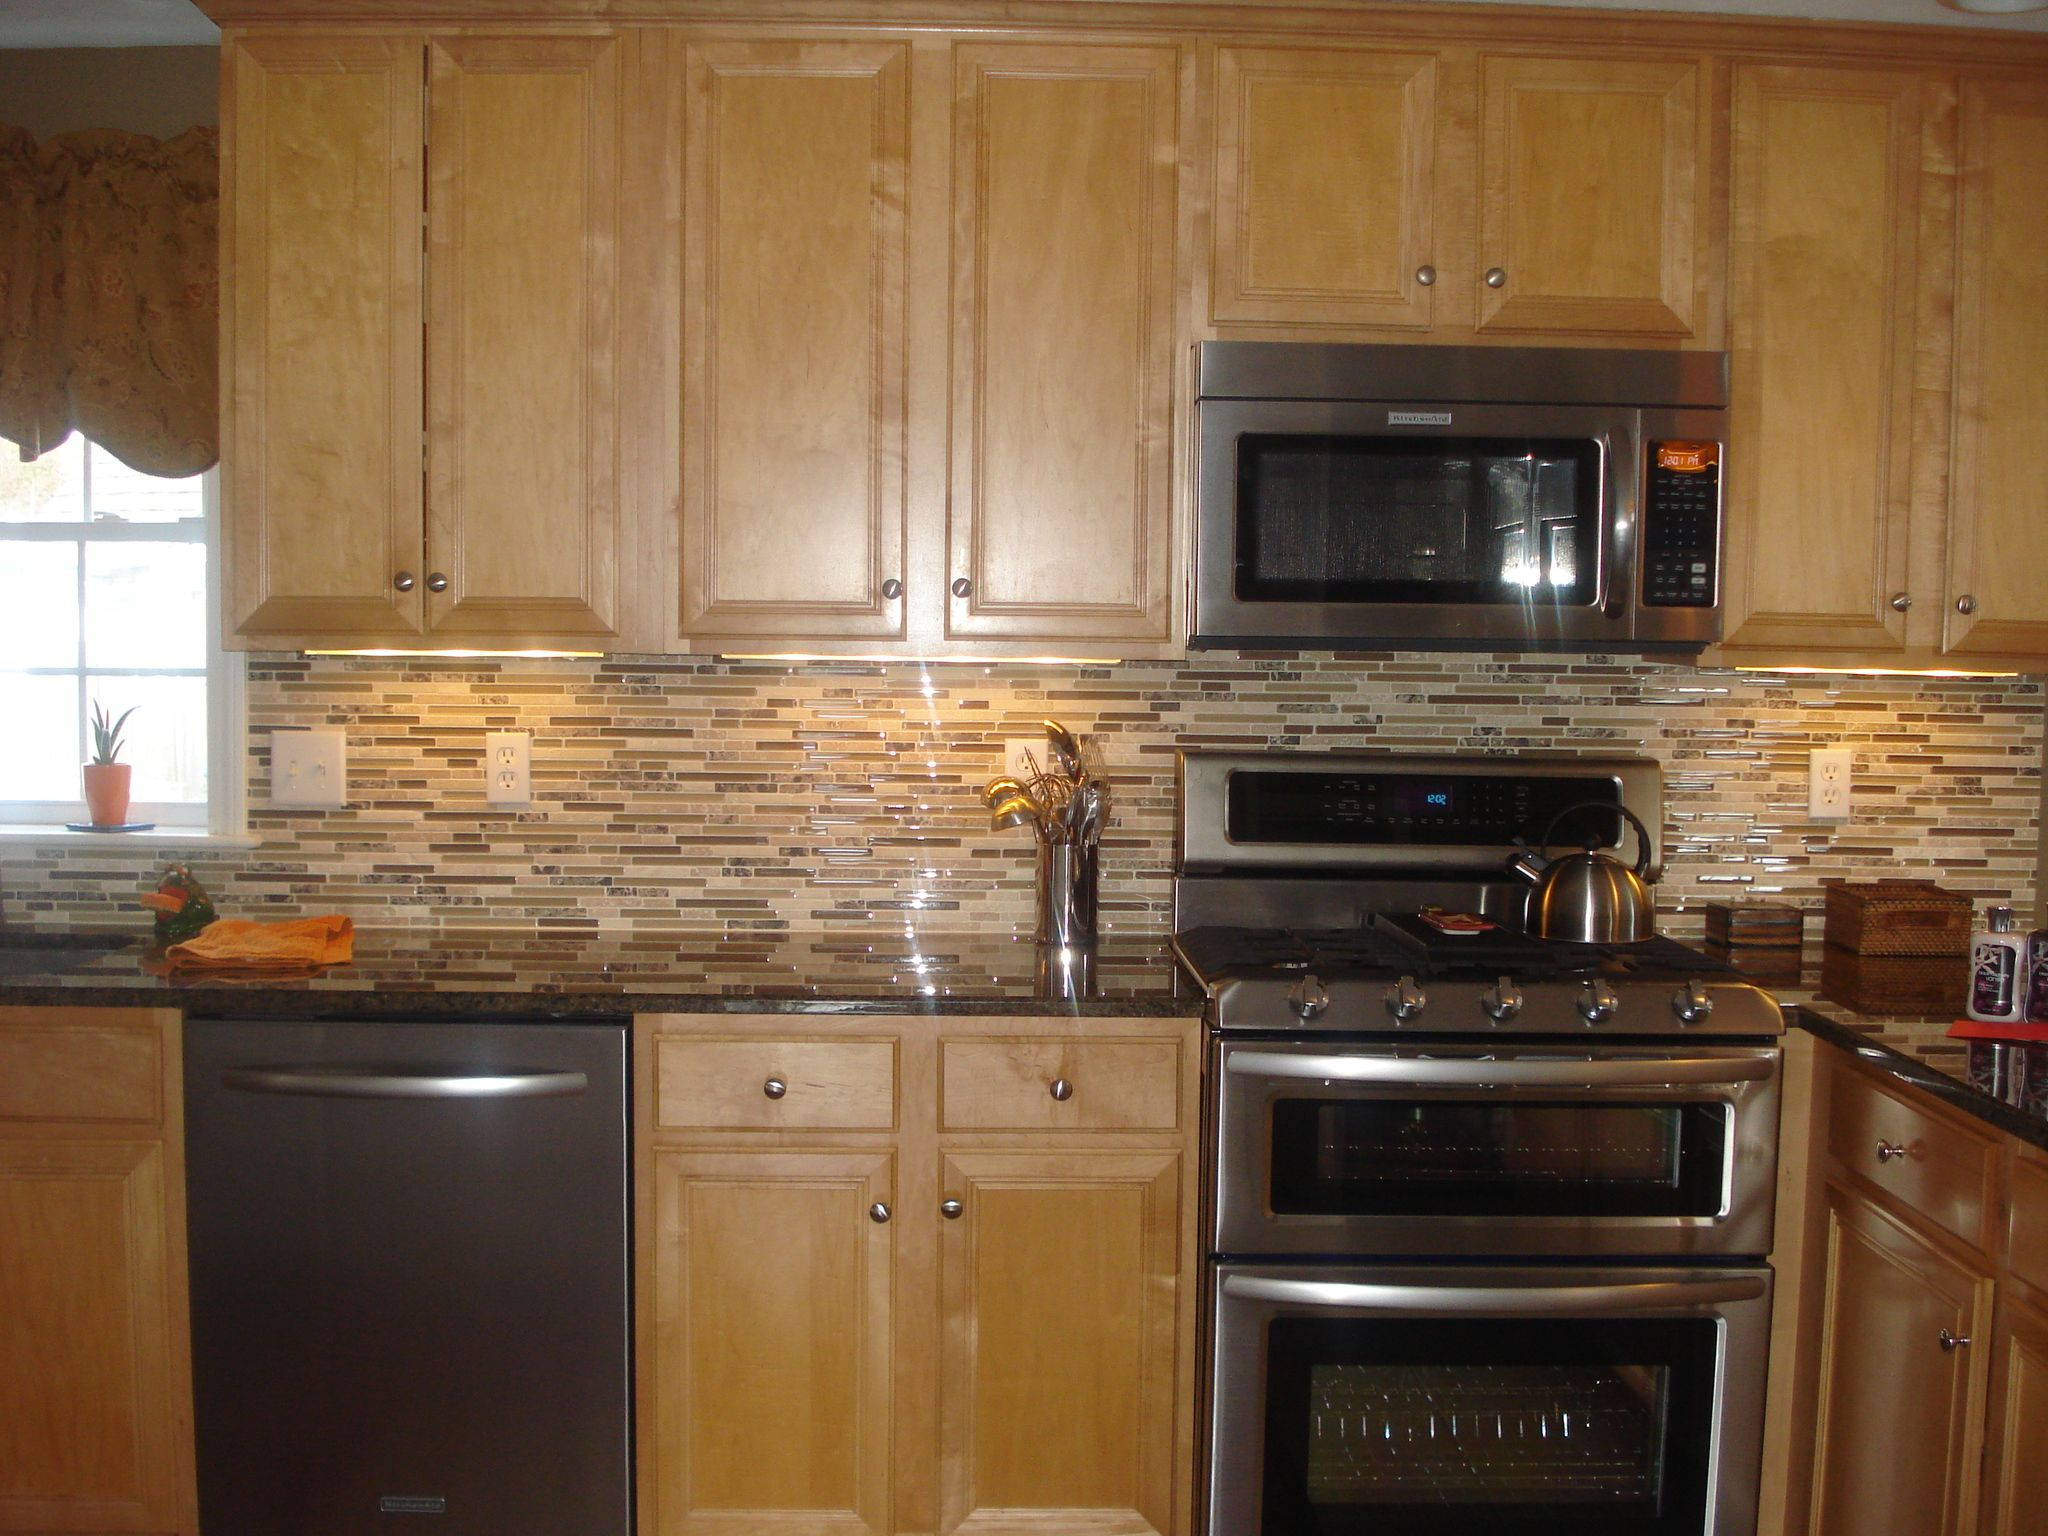 Modern Light Wood Kitchen Cabinets Backsplash Glass Tile Brown With Brown Cabinets .backsplash